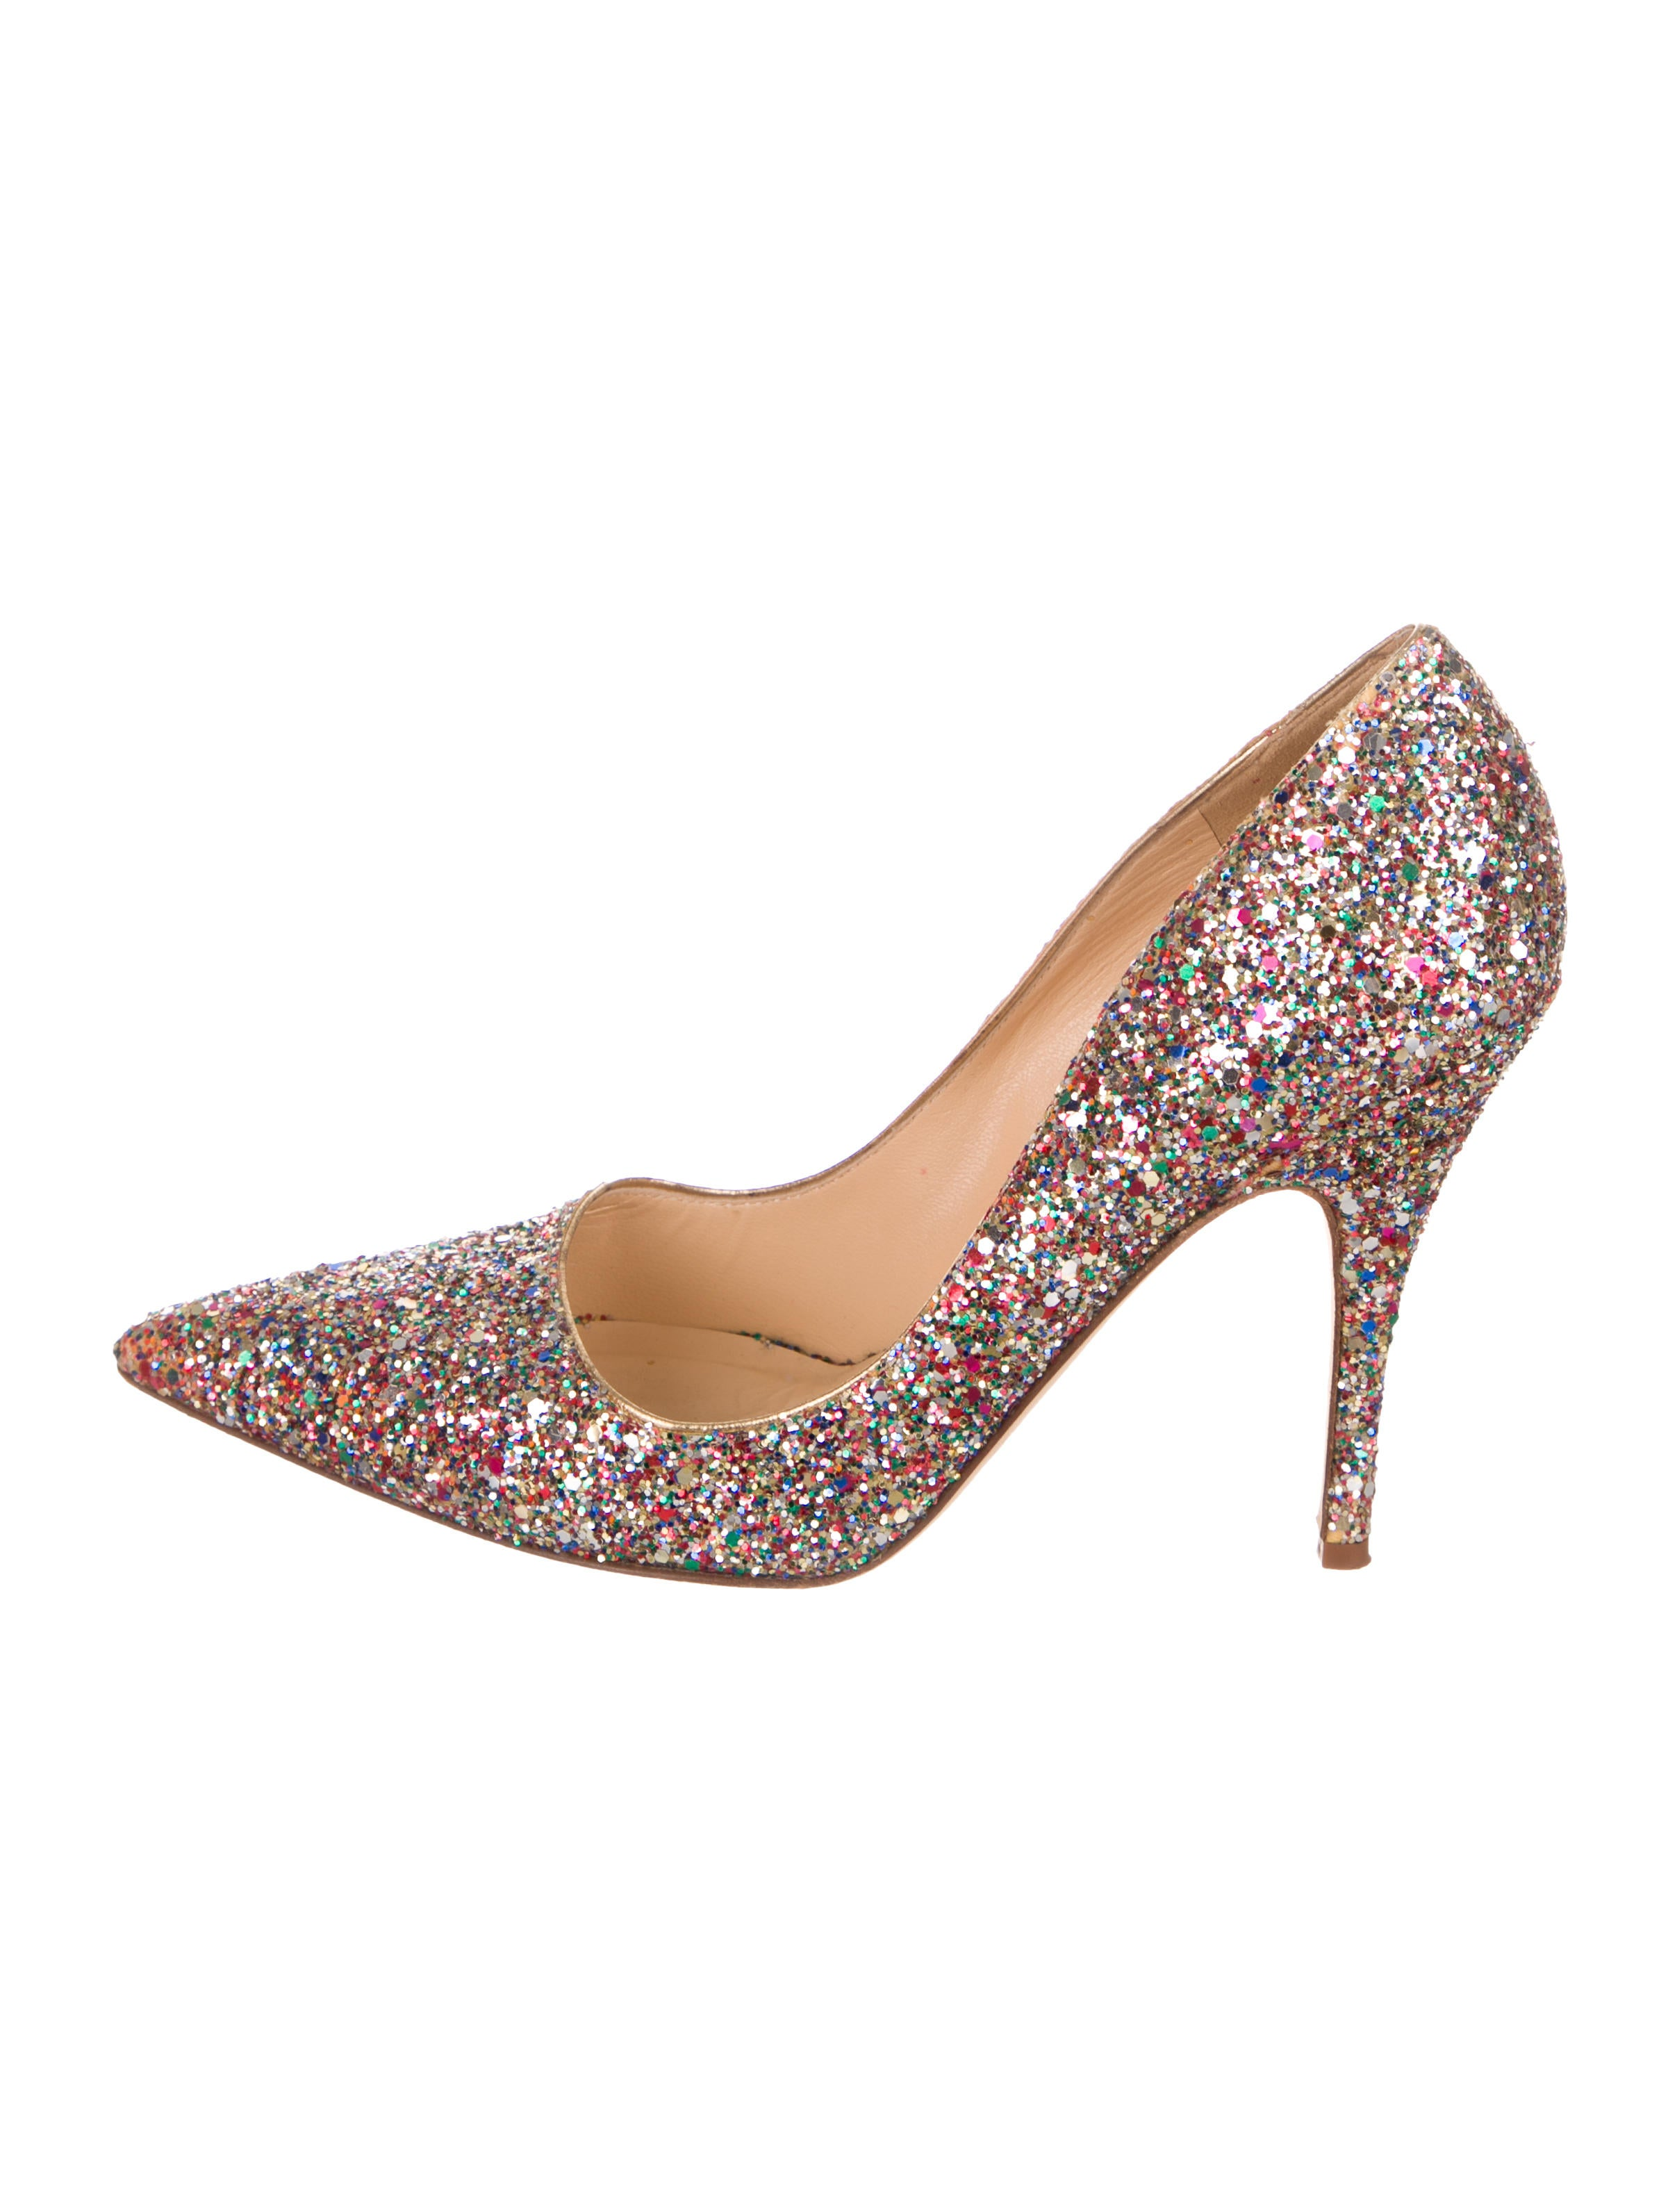 Glitter Pointed Toe Pumps by Kate Spade New York